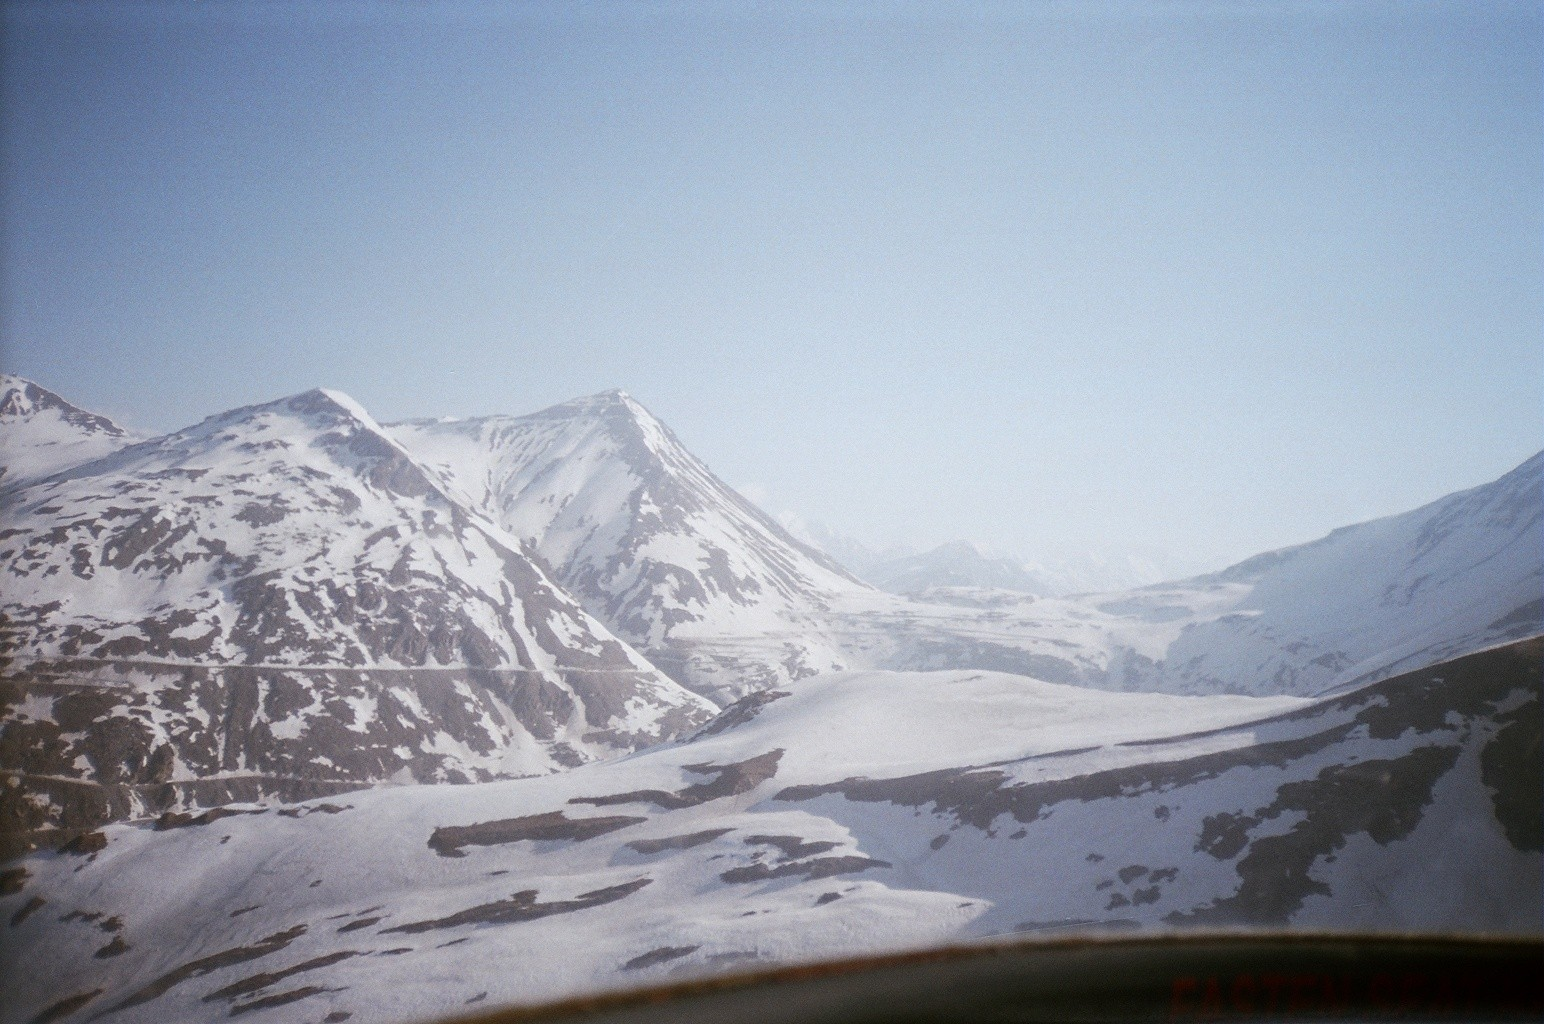 Lahaul valley in winter